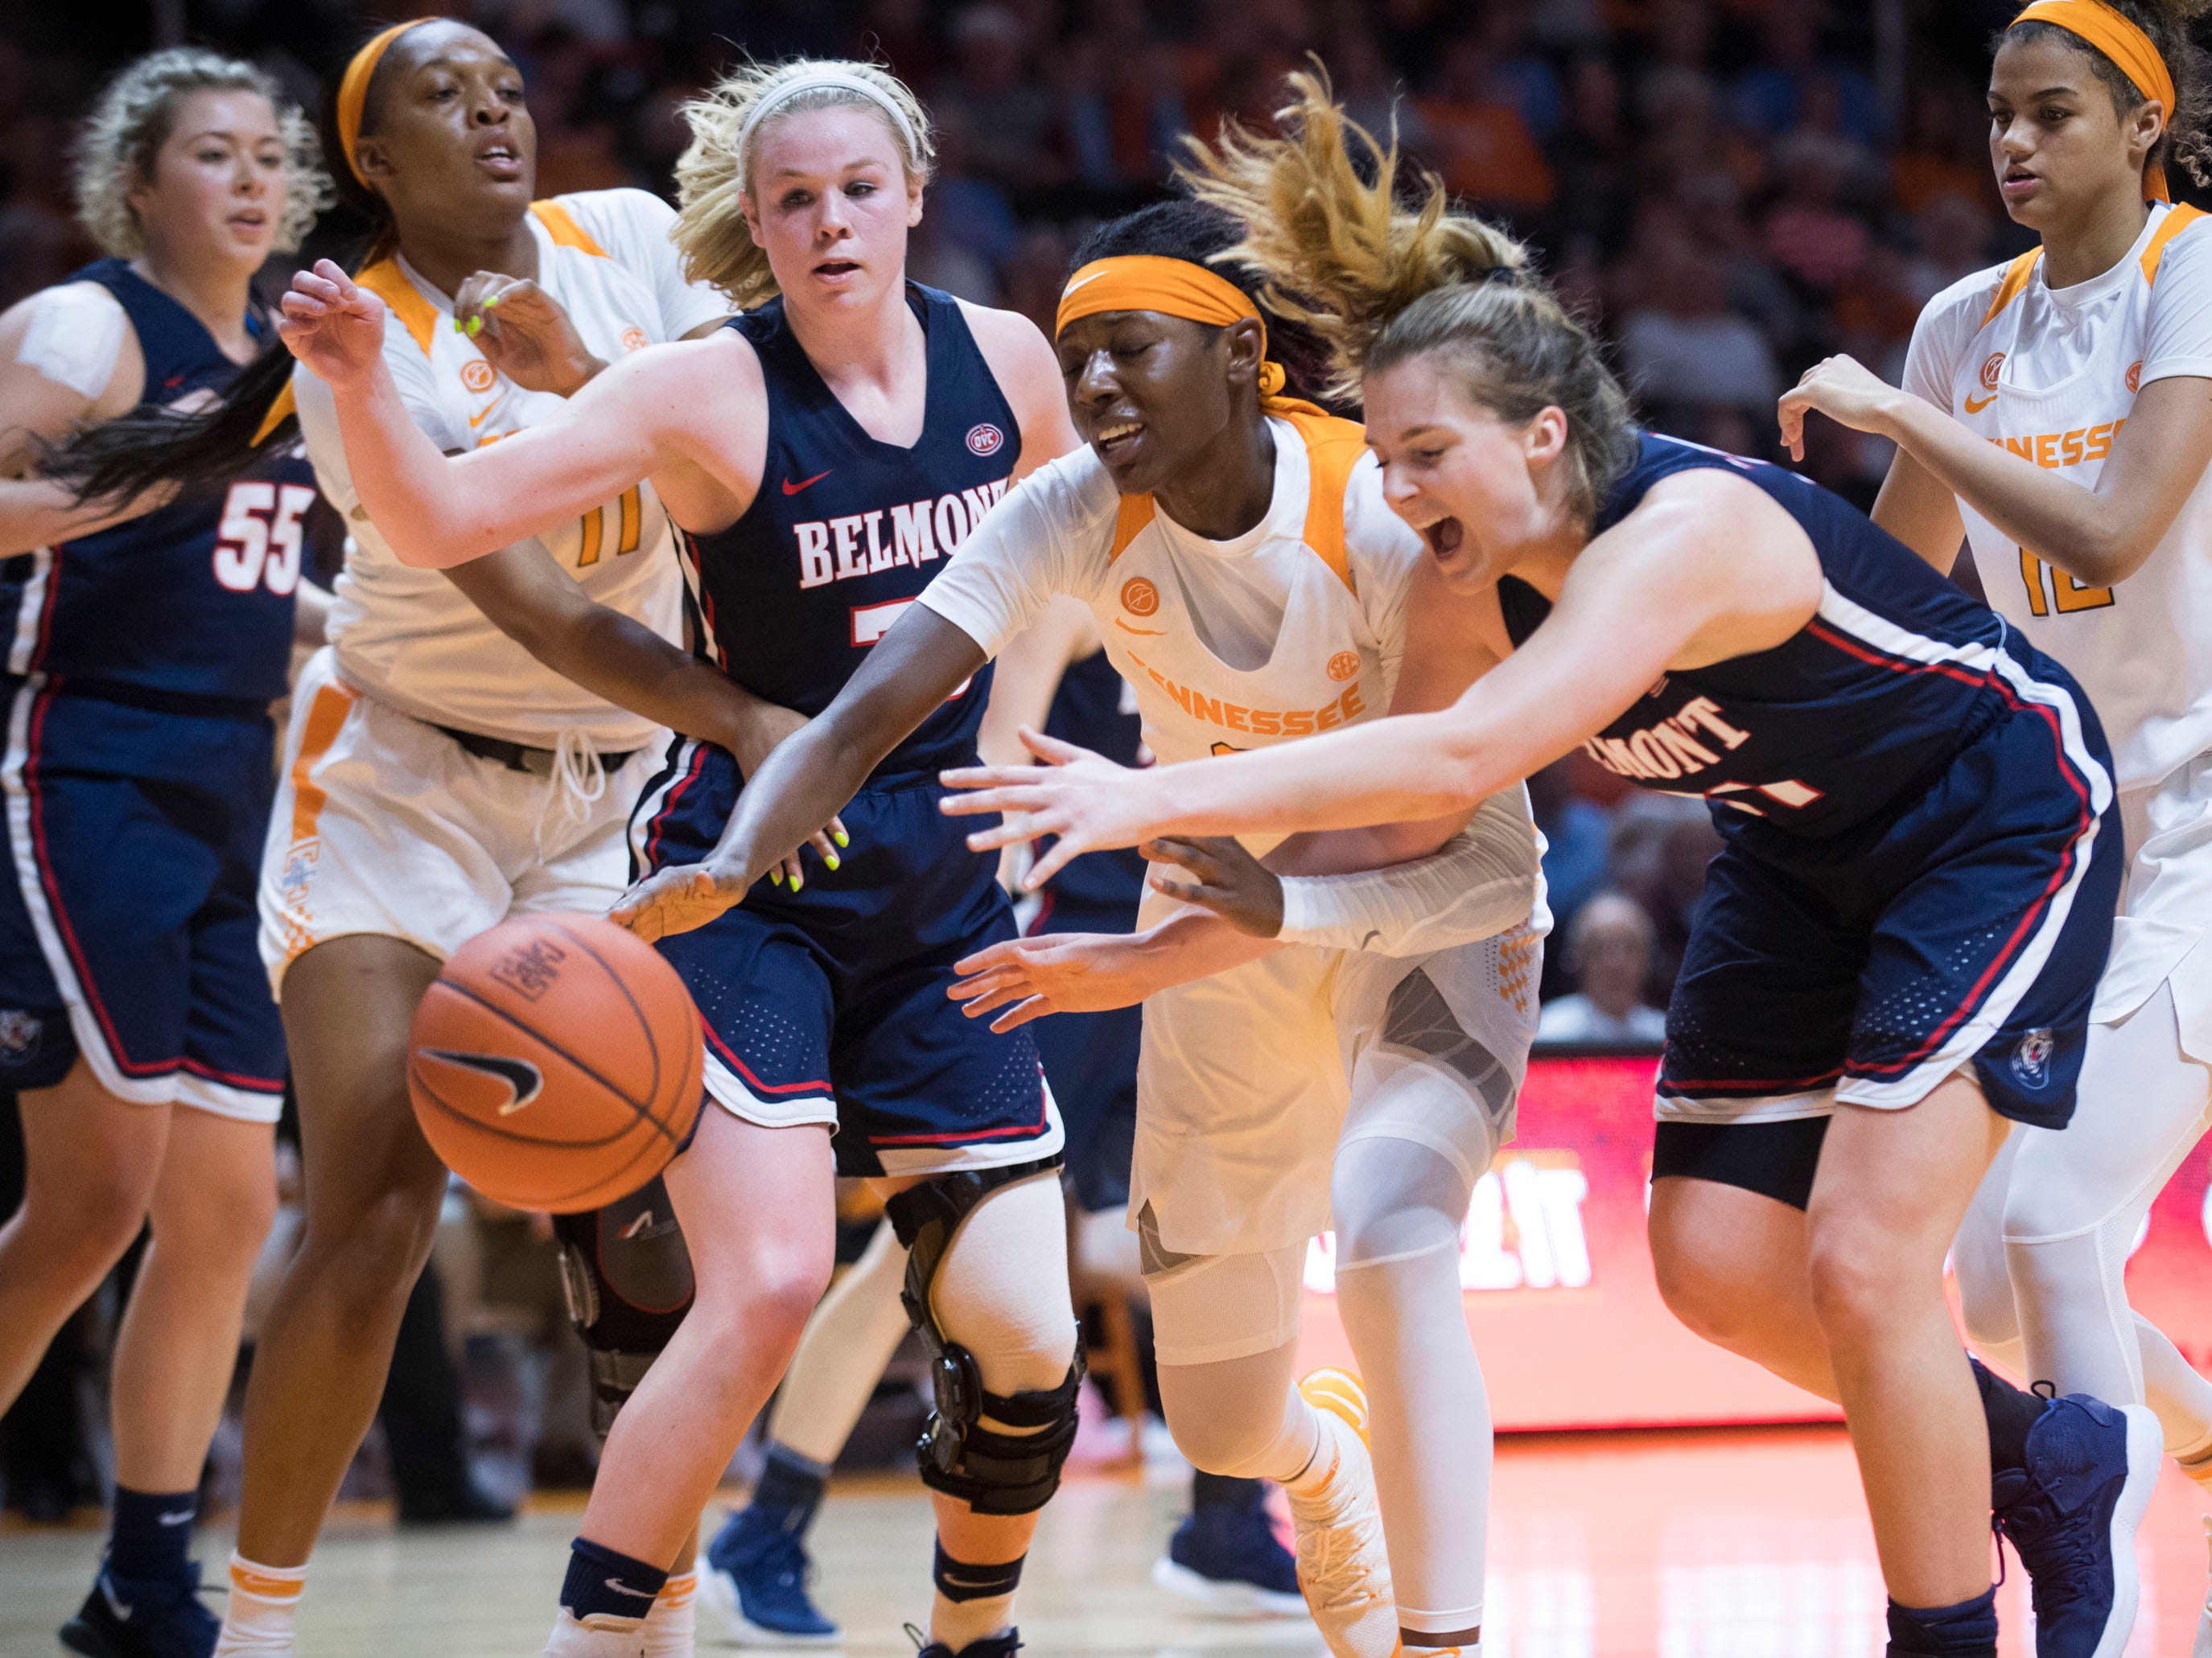 Belmont's Ellie Harmeyer (30) and Maura Muensterman (31) chase after the ball with Tennessee's Rennia Davis (0) on Sunday, December 30, 2018.